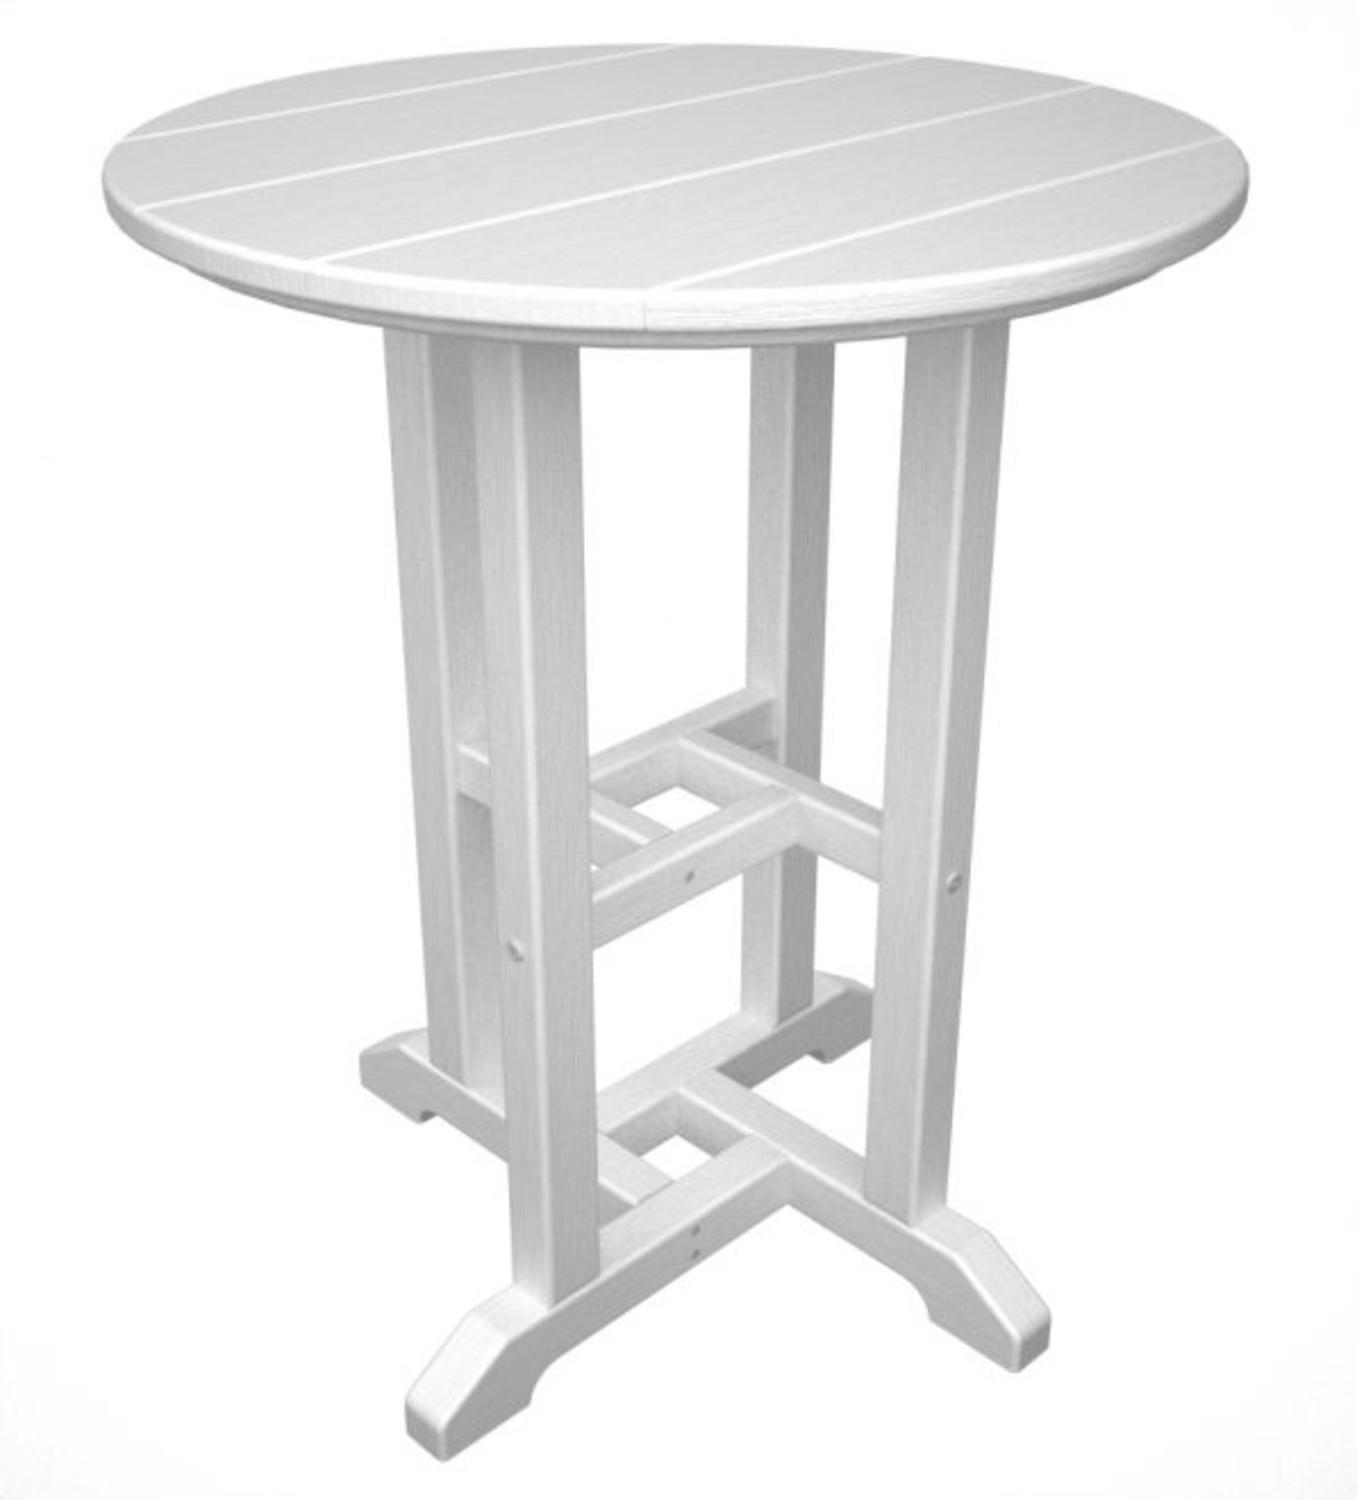 recycled outdoor patio round side table white